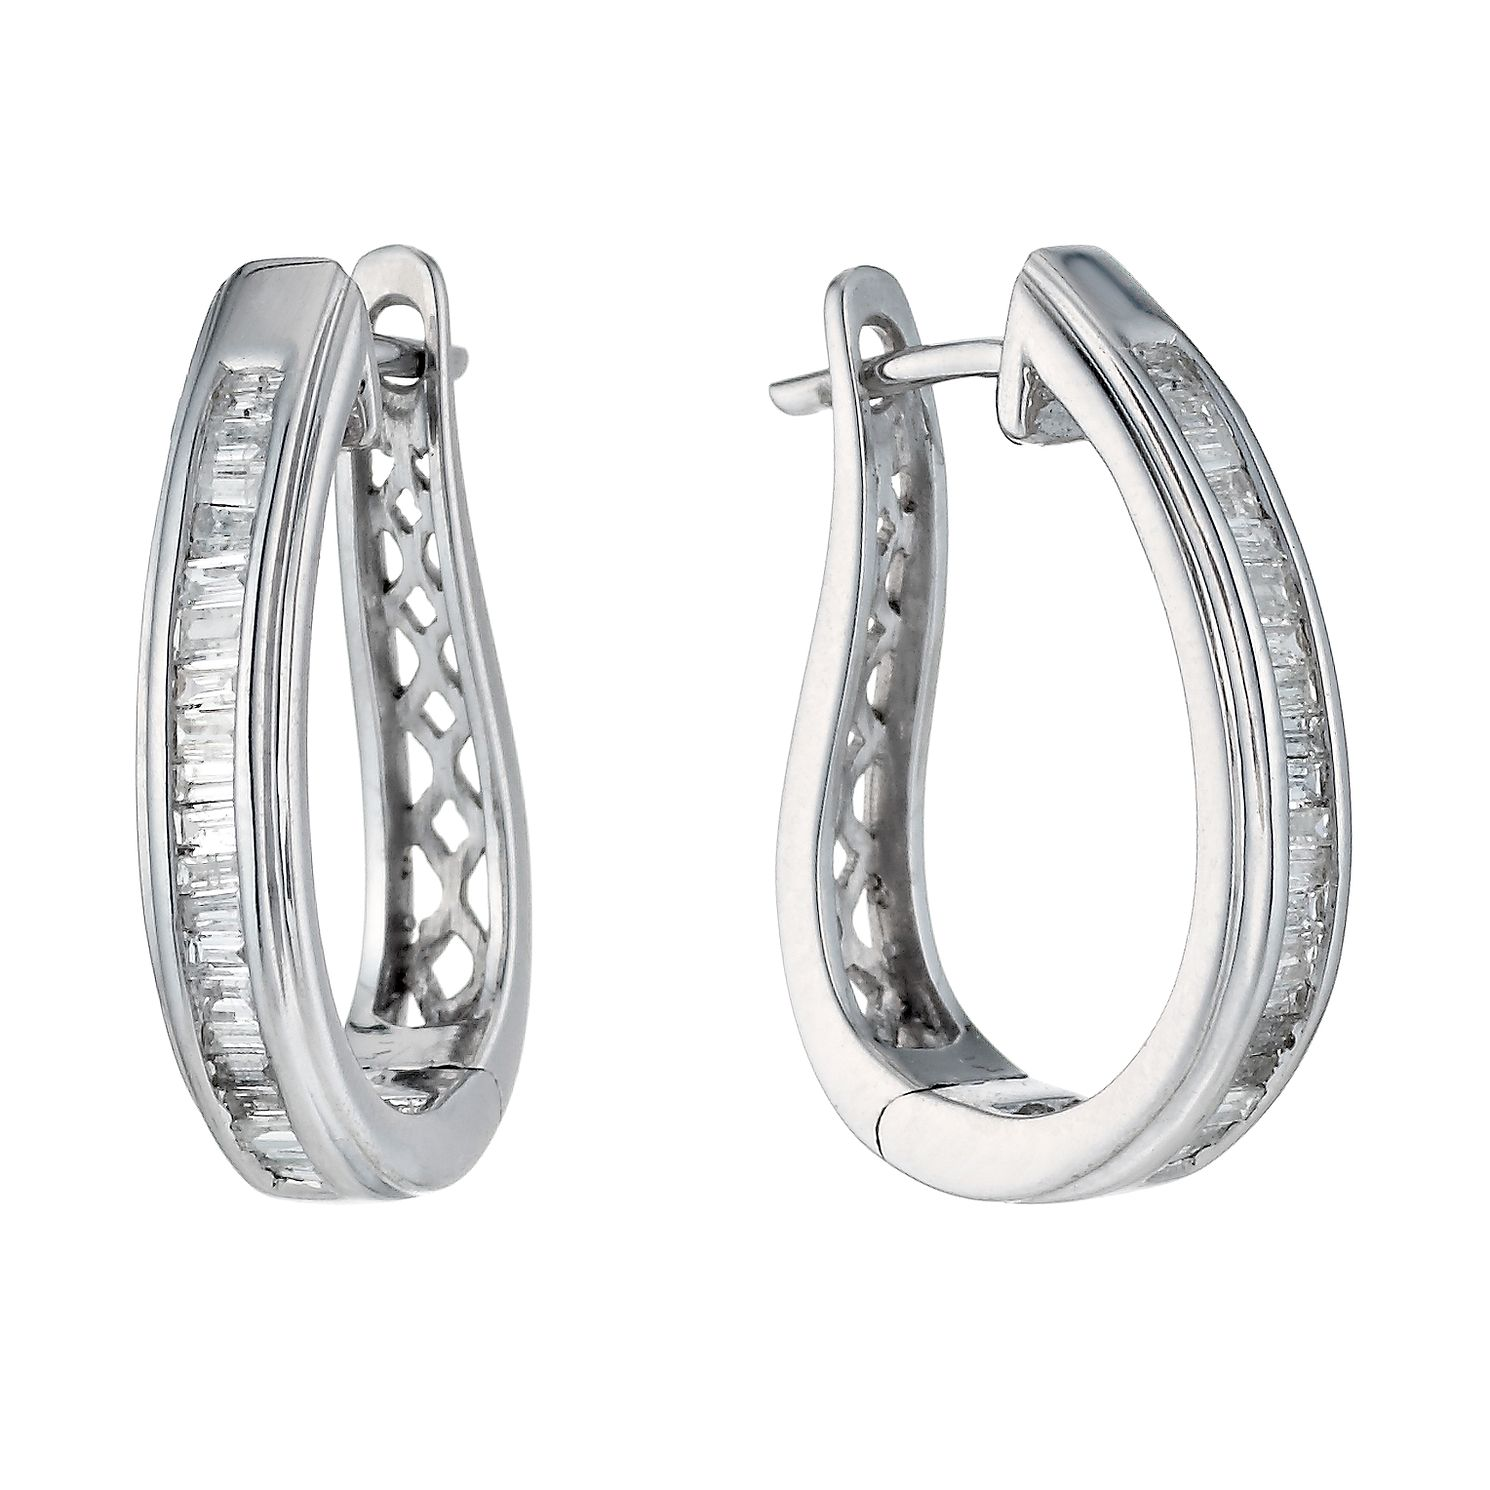 9ct White Gold 0.33ct Baguette Cut Diamond Hoop Earrings - Product number 1332120